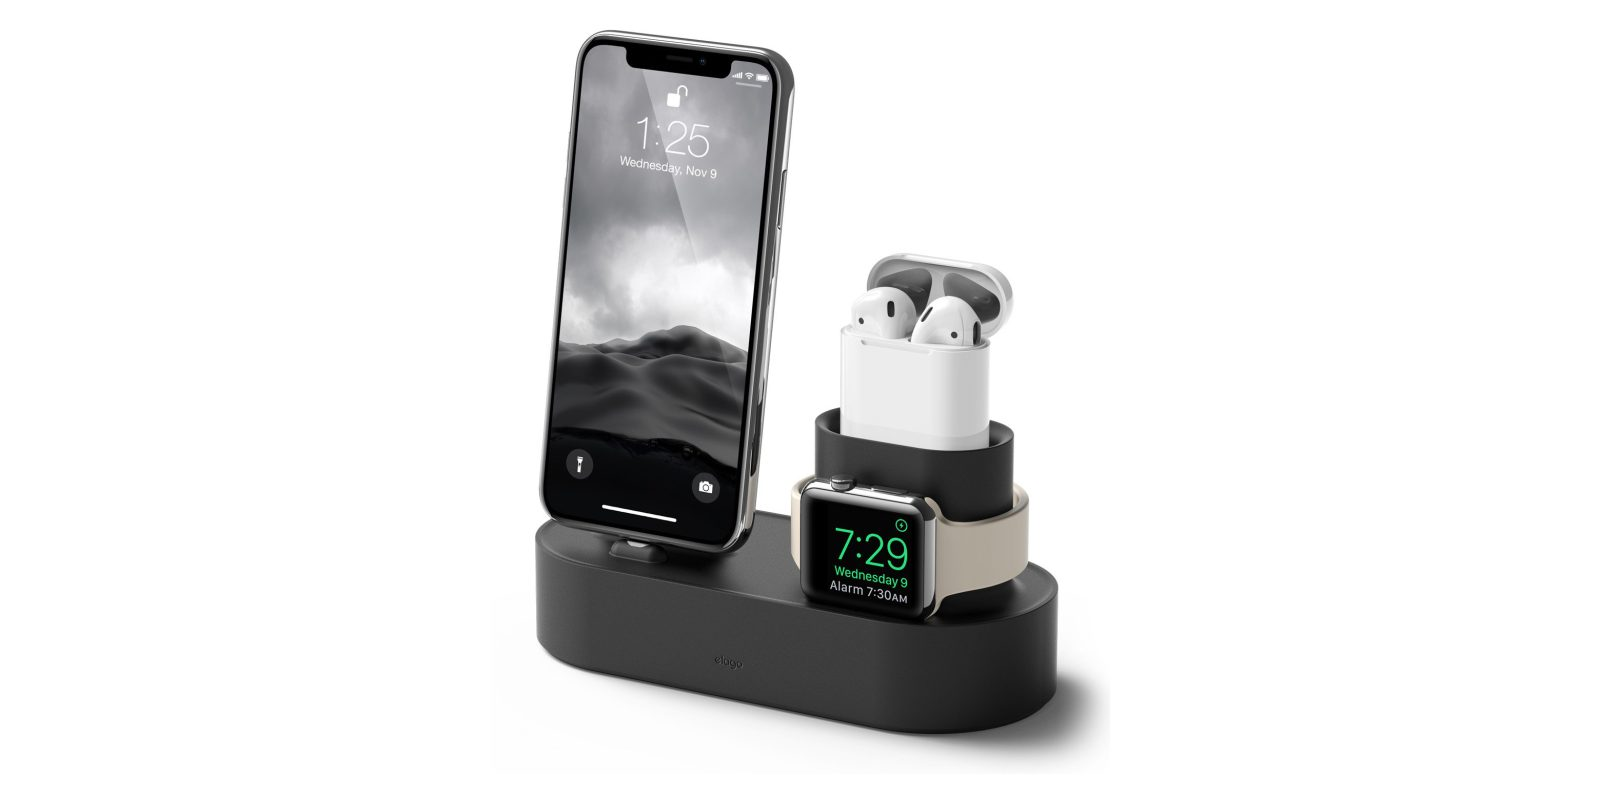 elago's 3-in-1 dock handles iPhone, AirPods, and Apple Watch for $19